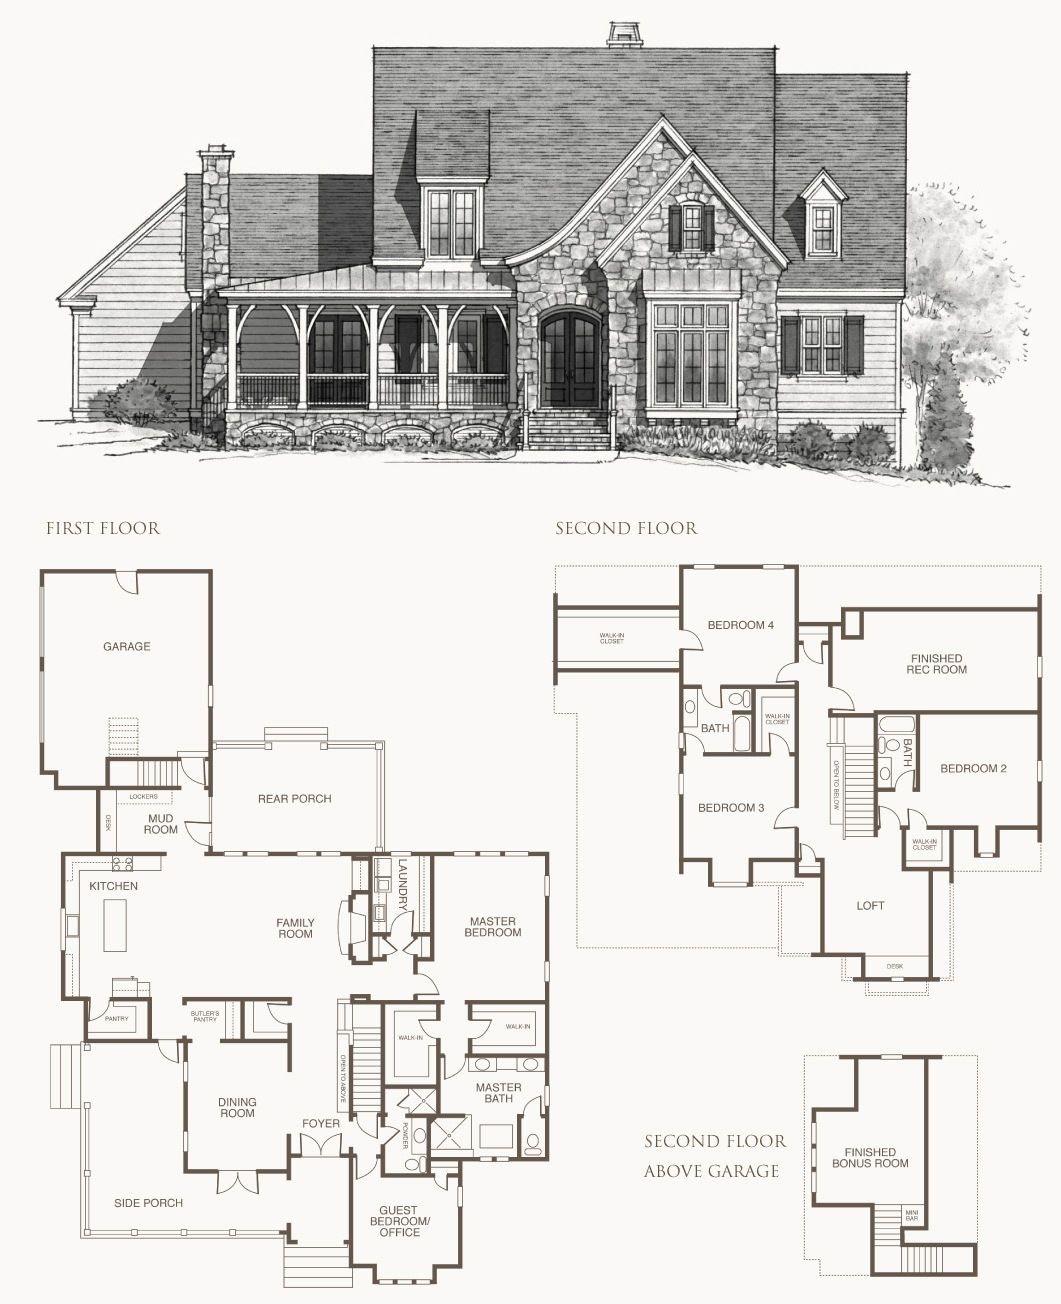 Havens South Designs Loves The Plans For This Elberton Model This Home Is In Halse Southern Living House Plans Cottage Floor Plans Craftsman House Plans